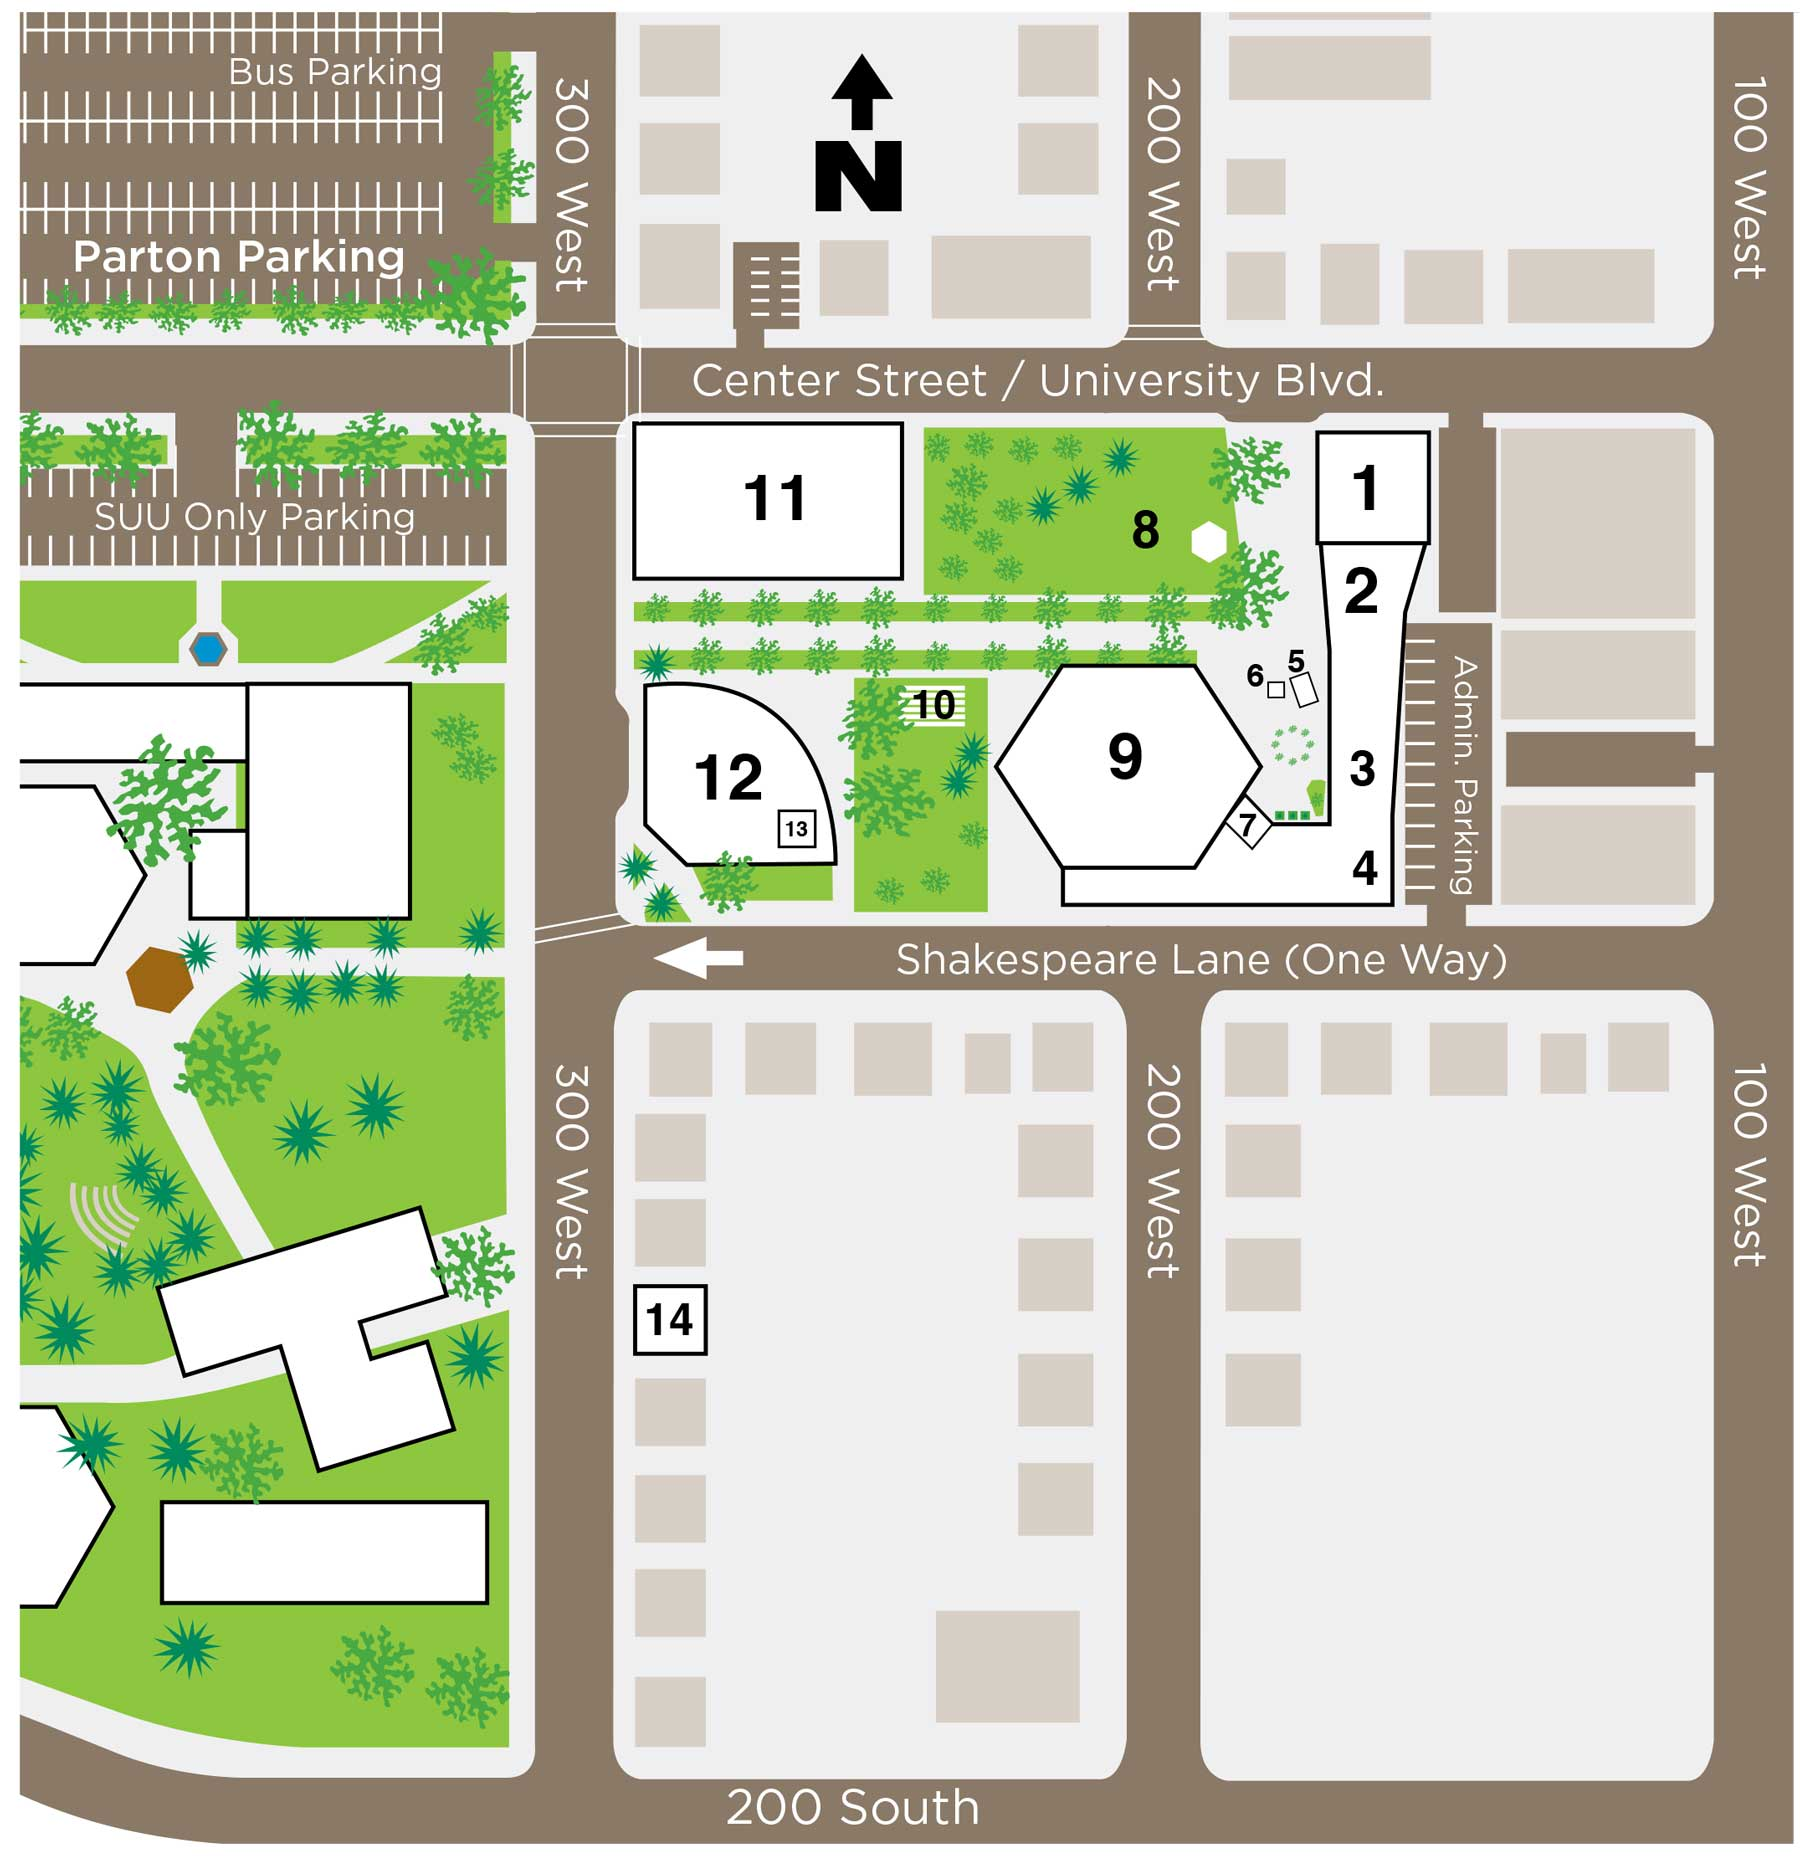 Parking-Map-for-Web-2019.jpg